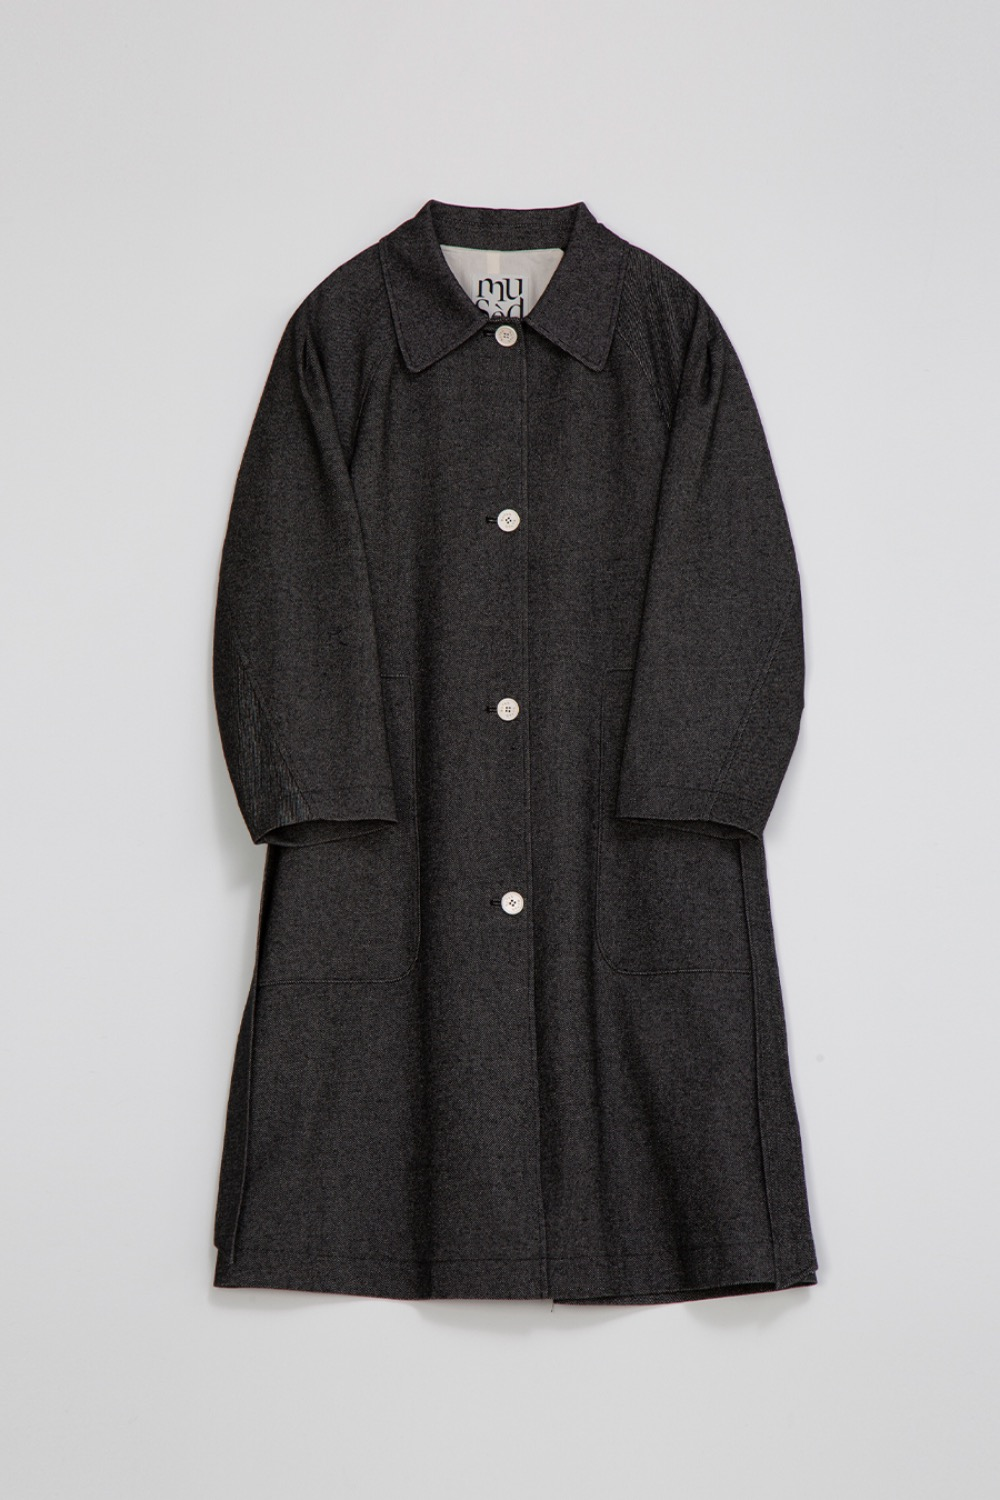 BON TRENCH COAT - BLACK TWILL WOOL-COTTON BLENDED ITALIAN FABRIC